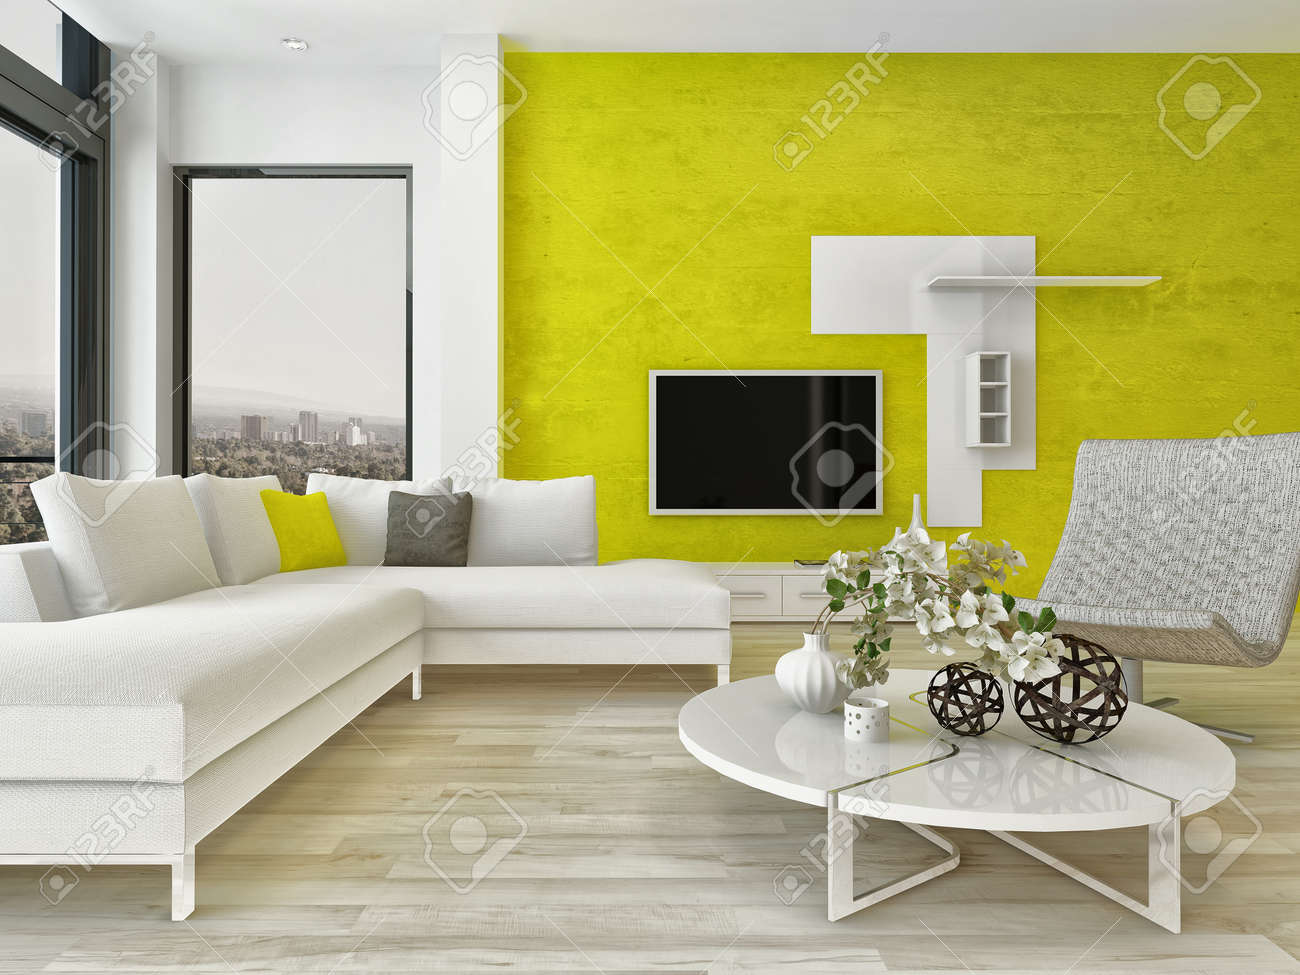 nice interior design photos. Modern design living room interior with nice furniture and fancy green wall  Stock Photo 28772443 Design Living Room Interior With Nice Furniture And Fancy